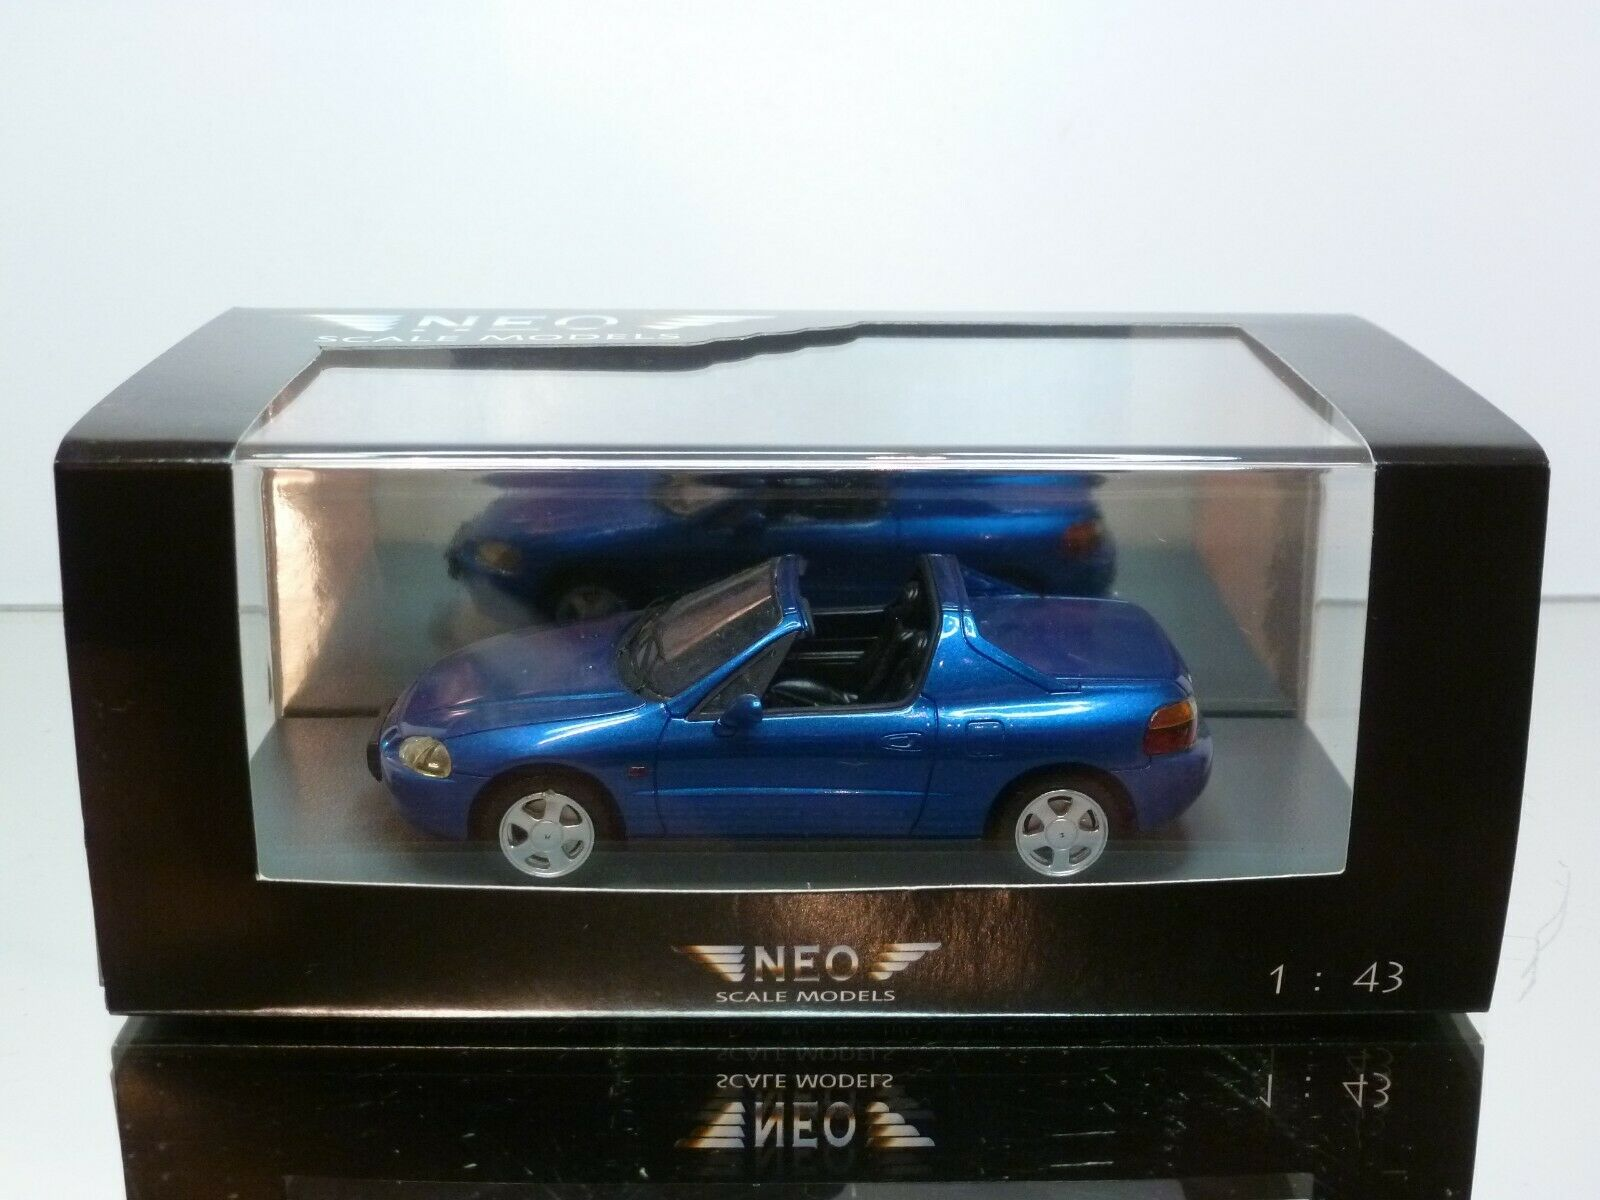 NEO MODELS 44511 HONDA CRX DEL SOL - bleu METALLIC 1 43 - EXCELLENT IN BOX